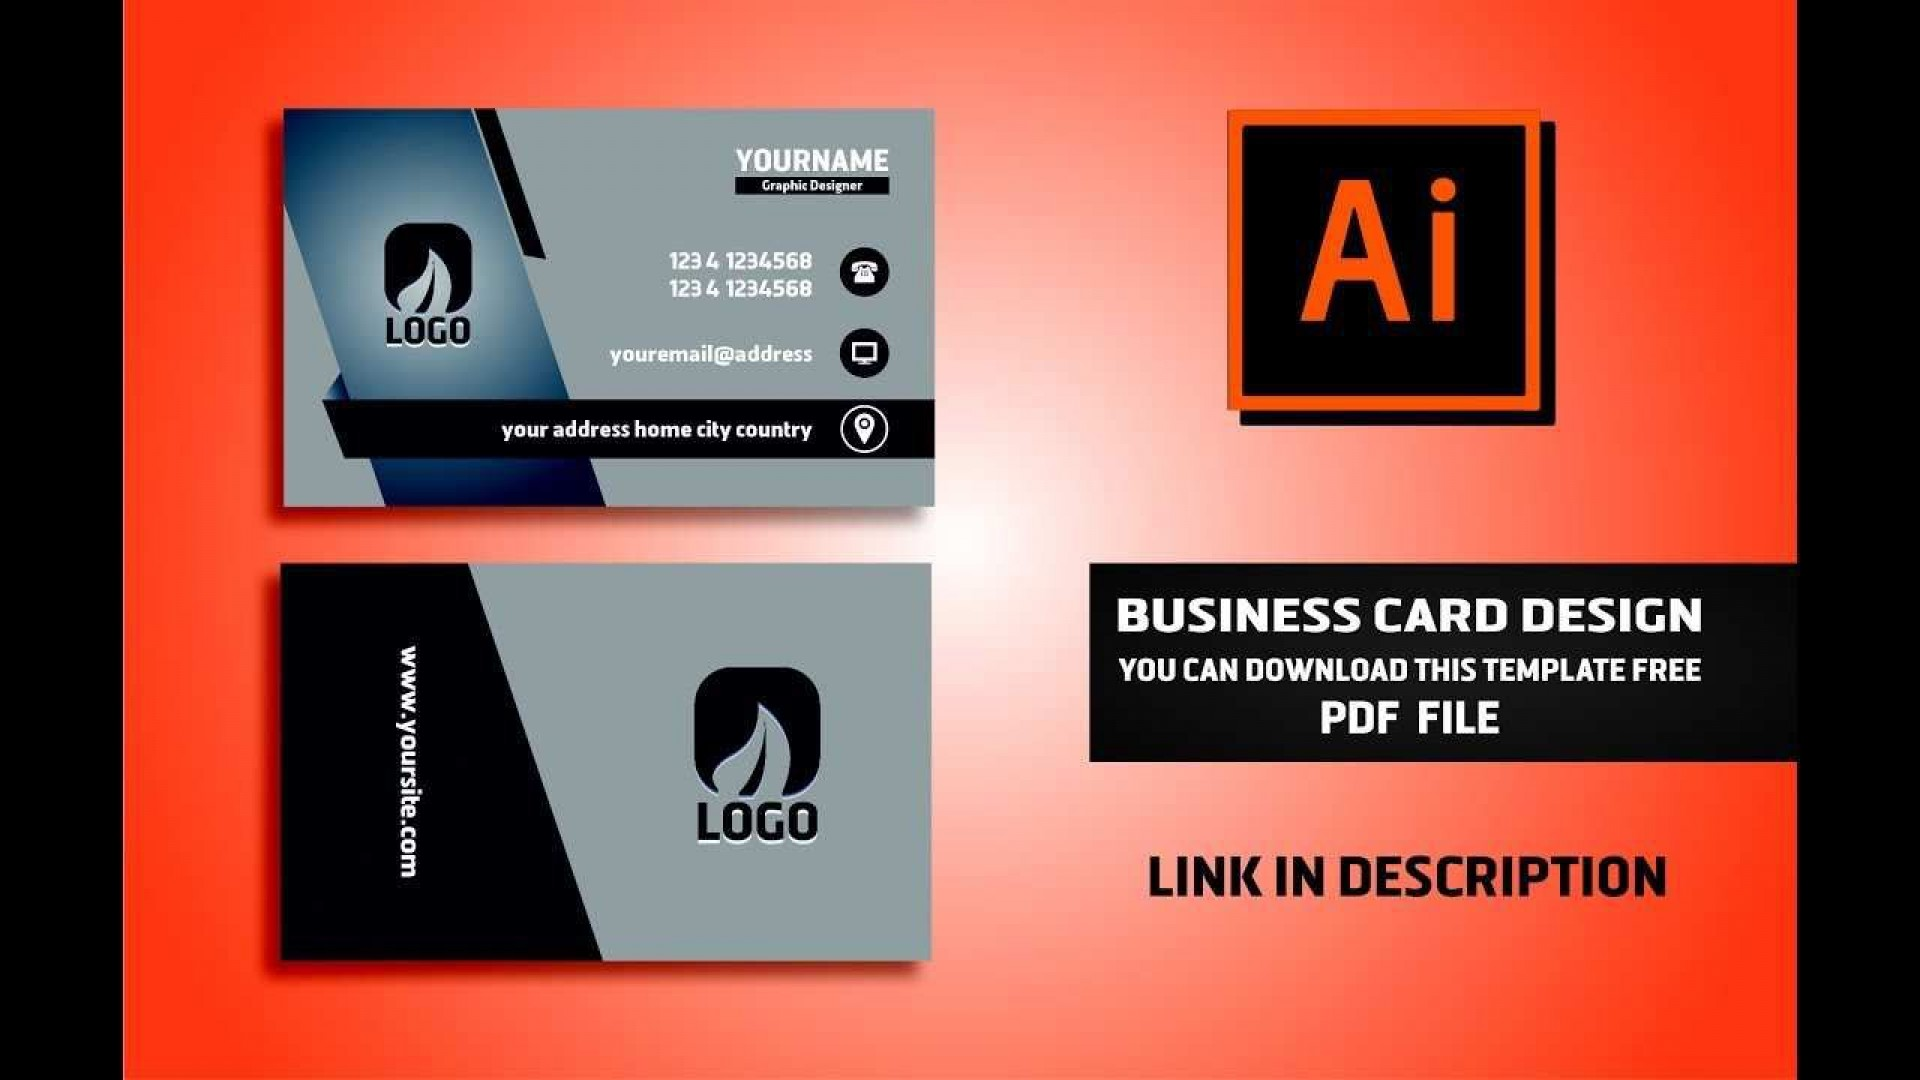 001 Stupendou Free Download Busines Card Template Design  Templates Psd File M Word1920